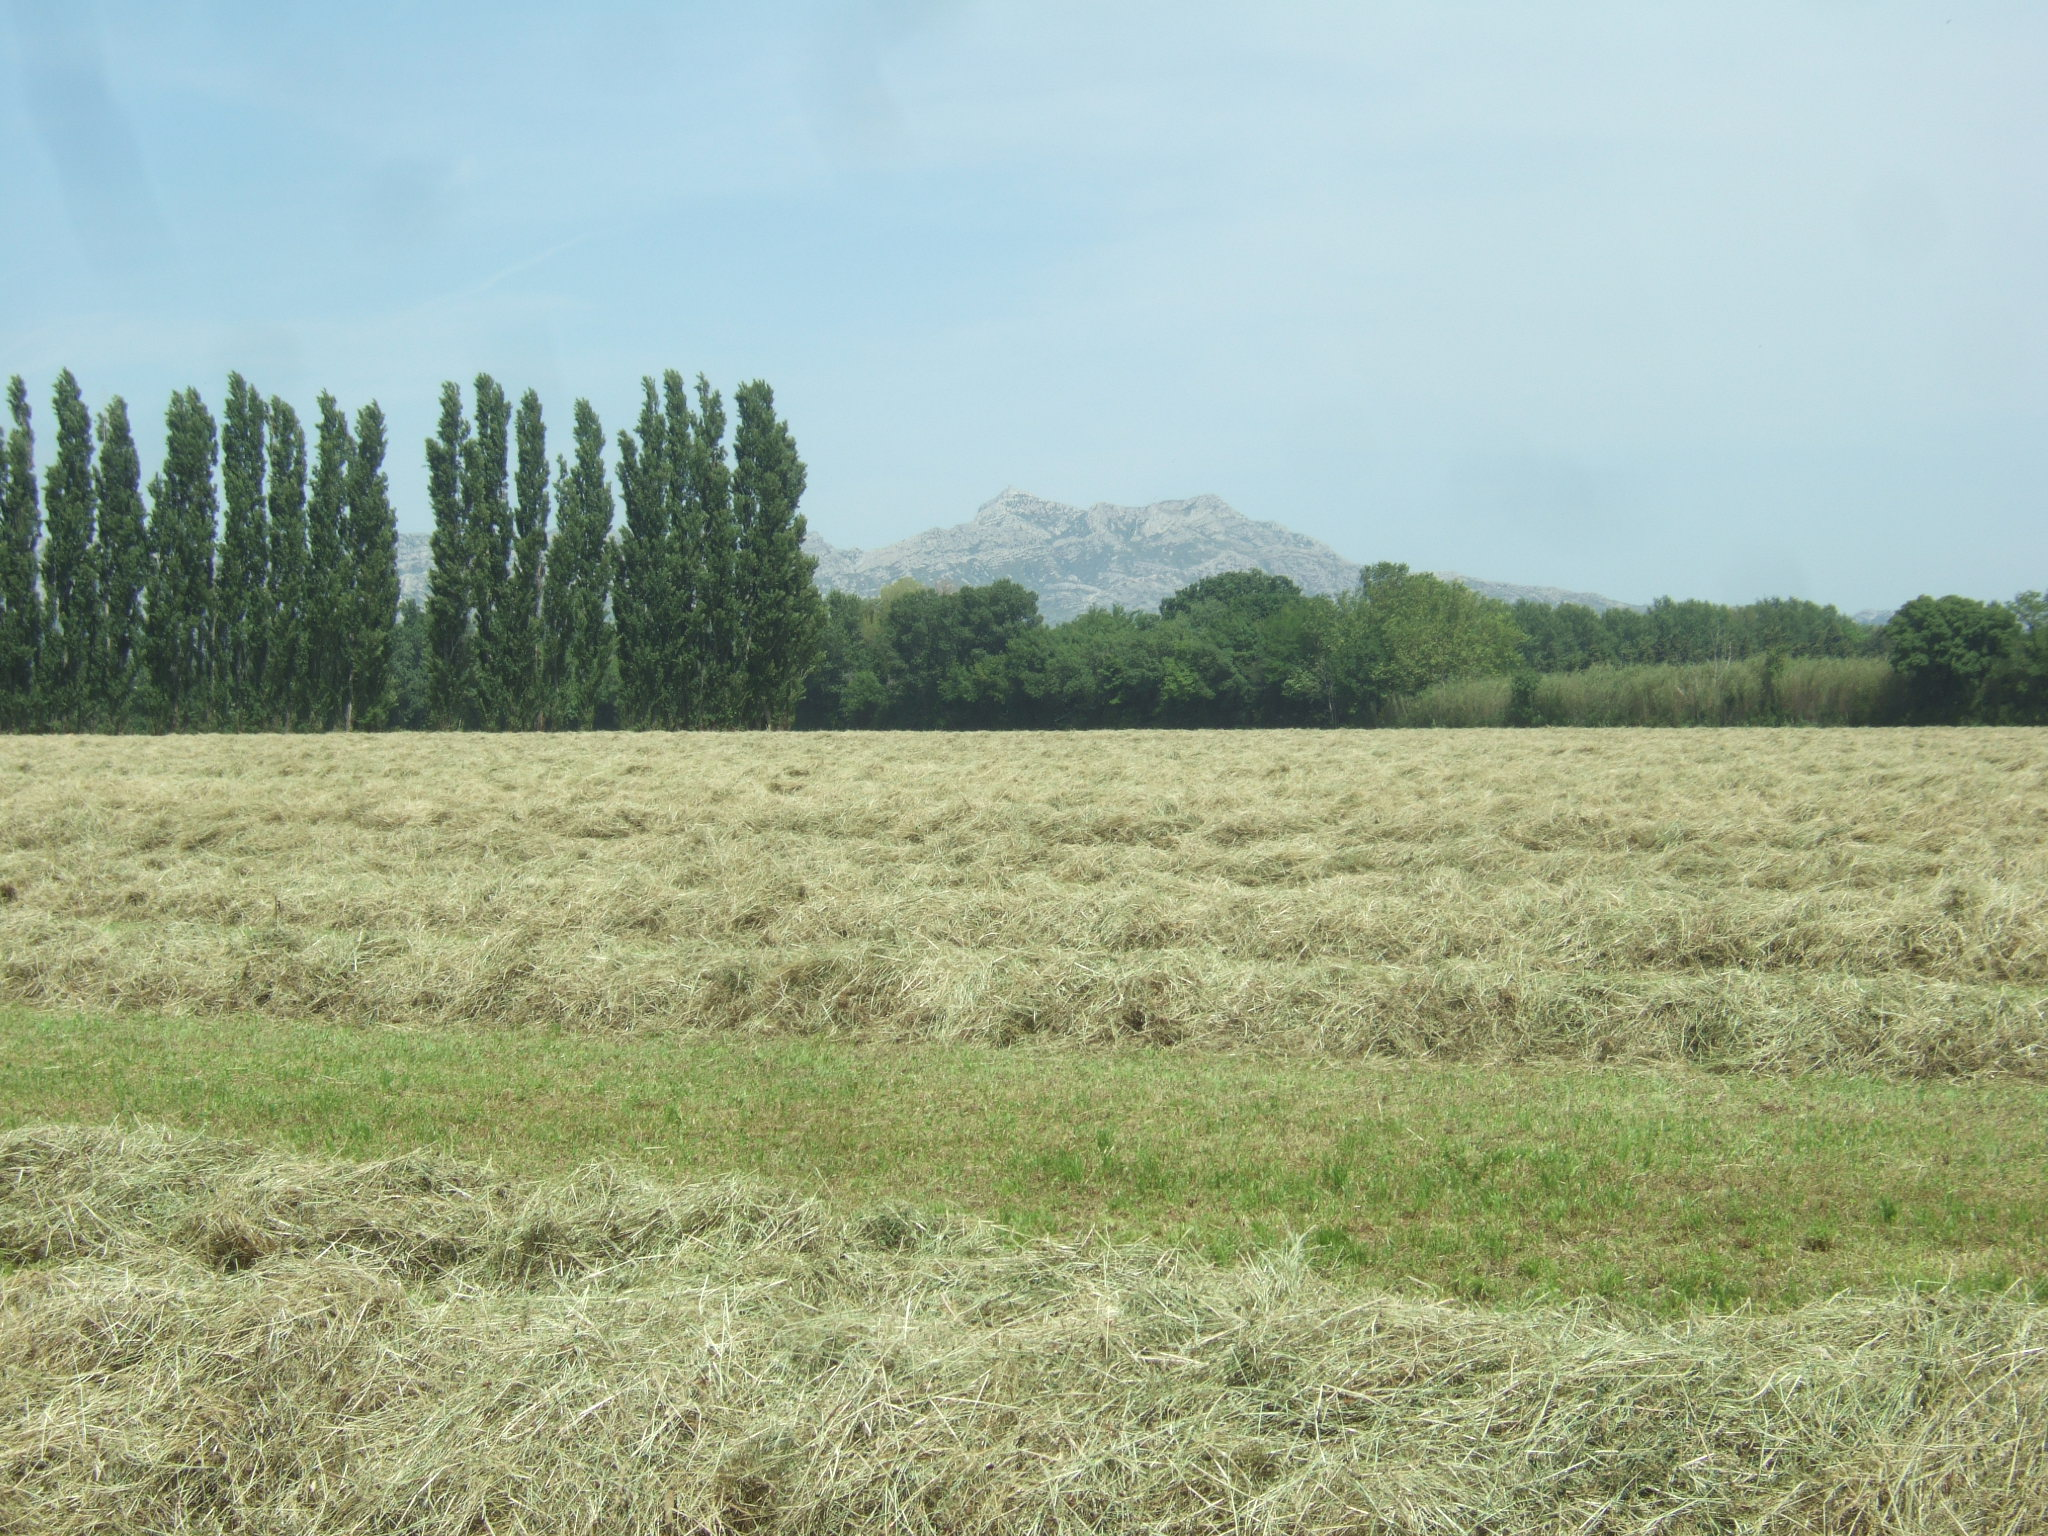 Crau hay compressed in chc bales hay france company this forage has enjoyed an appellation dorigine contrle aoc certification since 1997 which became aop appellation dorigine protge in 2009 xflitez Image collections